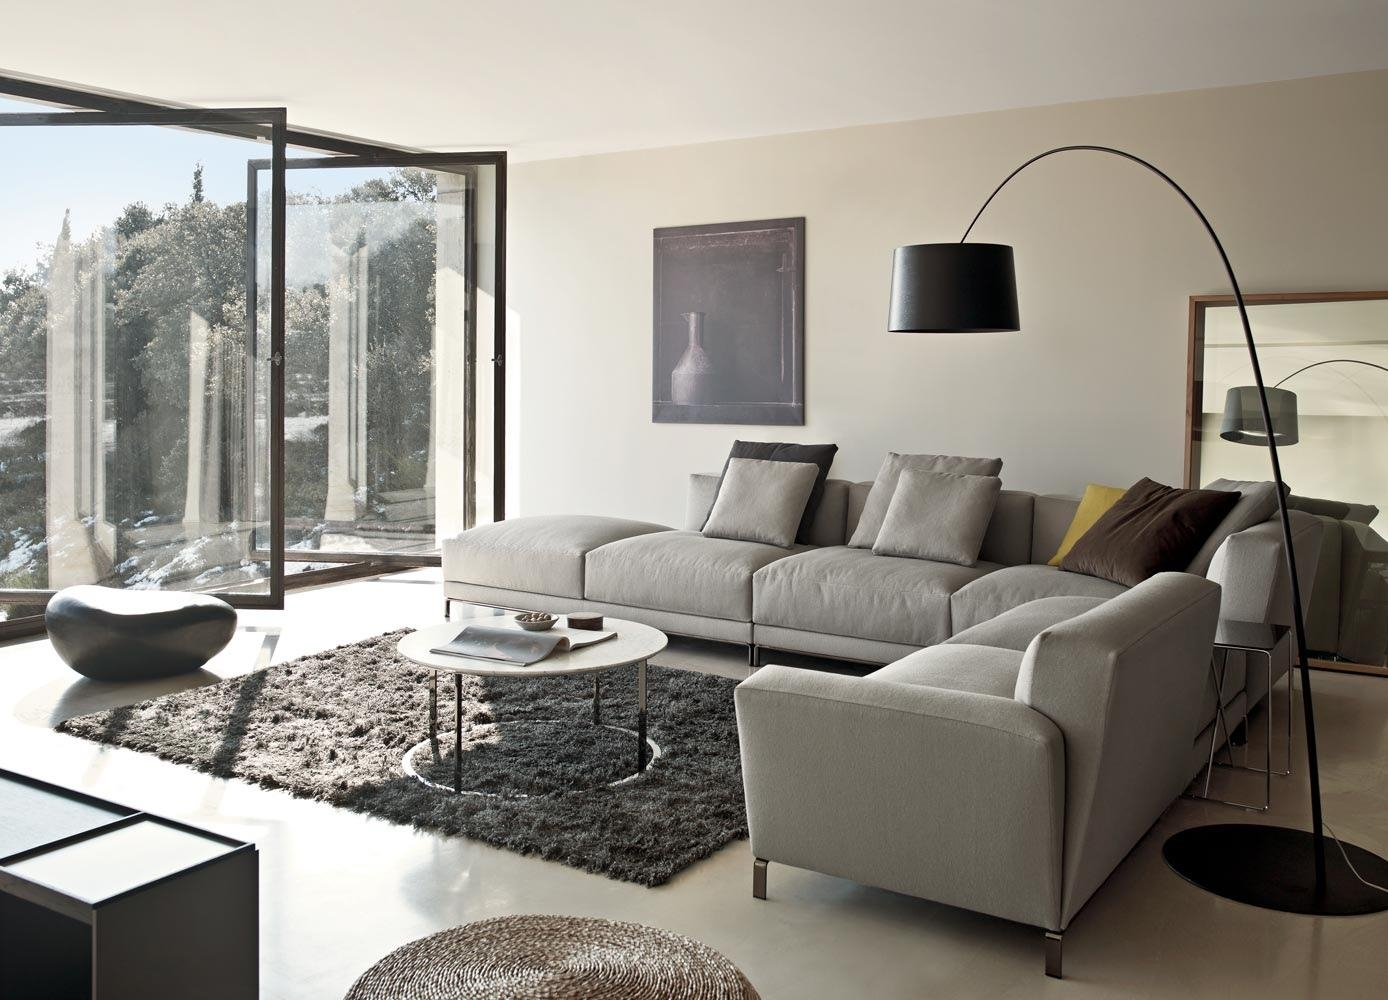 Sectional Living Room Design | Latest Gallery Photo In Decorating With A Sectional Sofa (View 12 of 15)